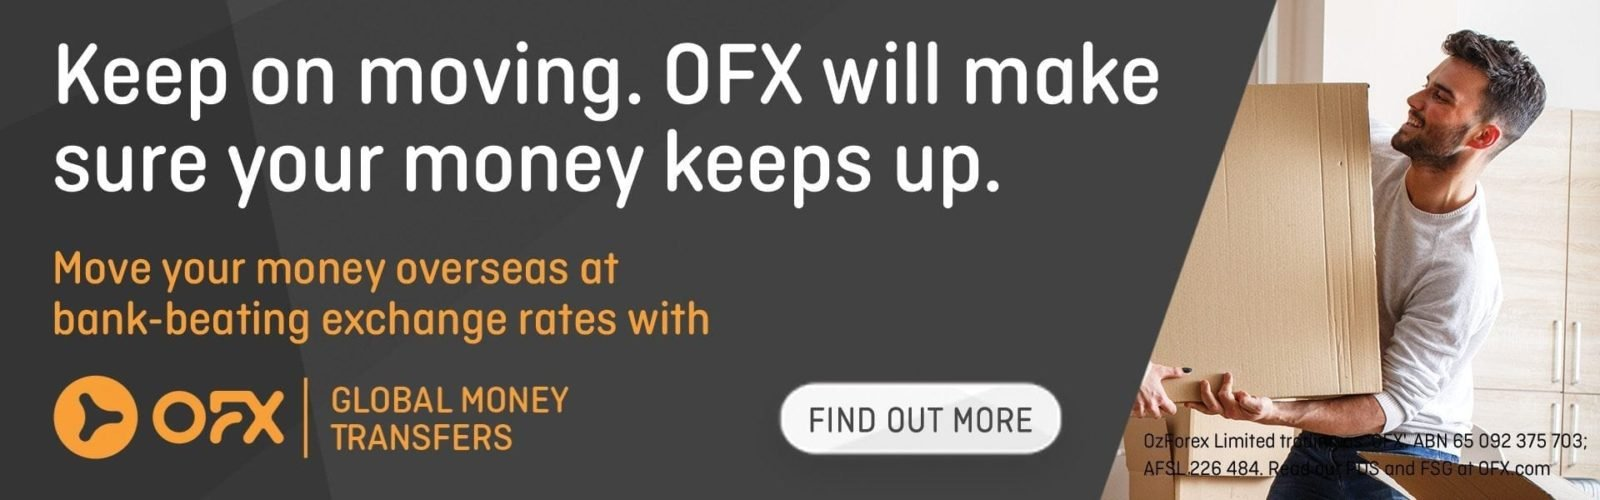 Move your money overseas - OFX Global Money Transfers